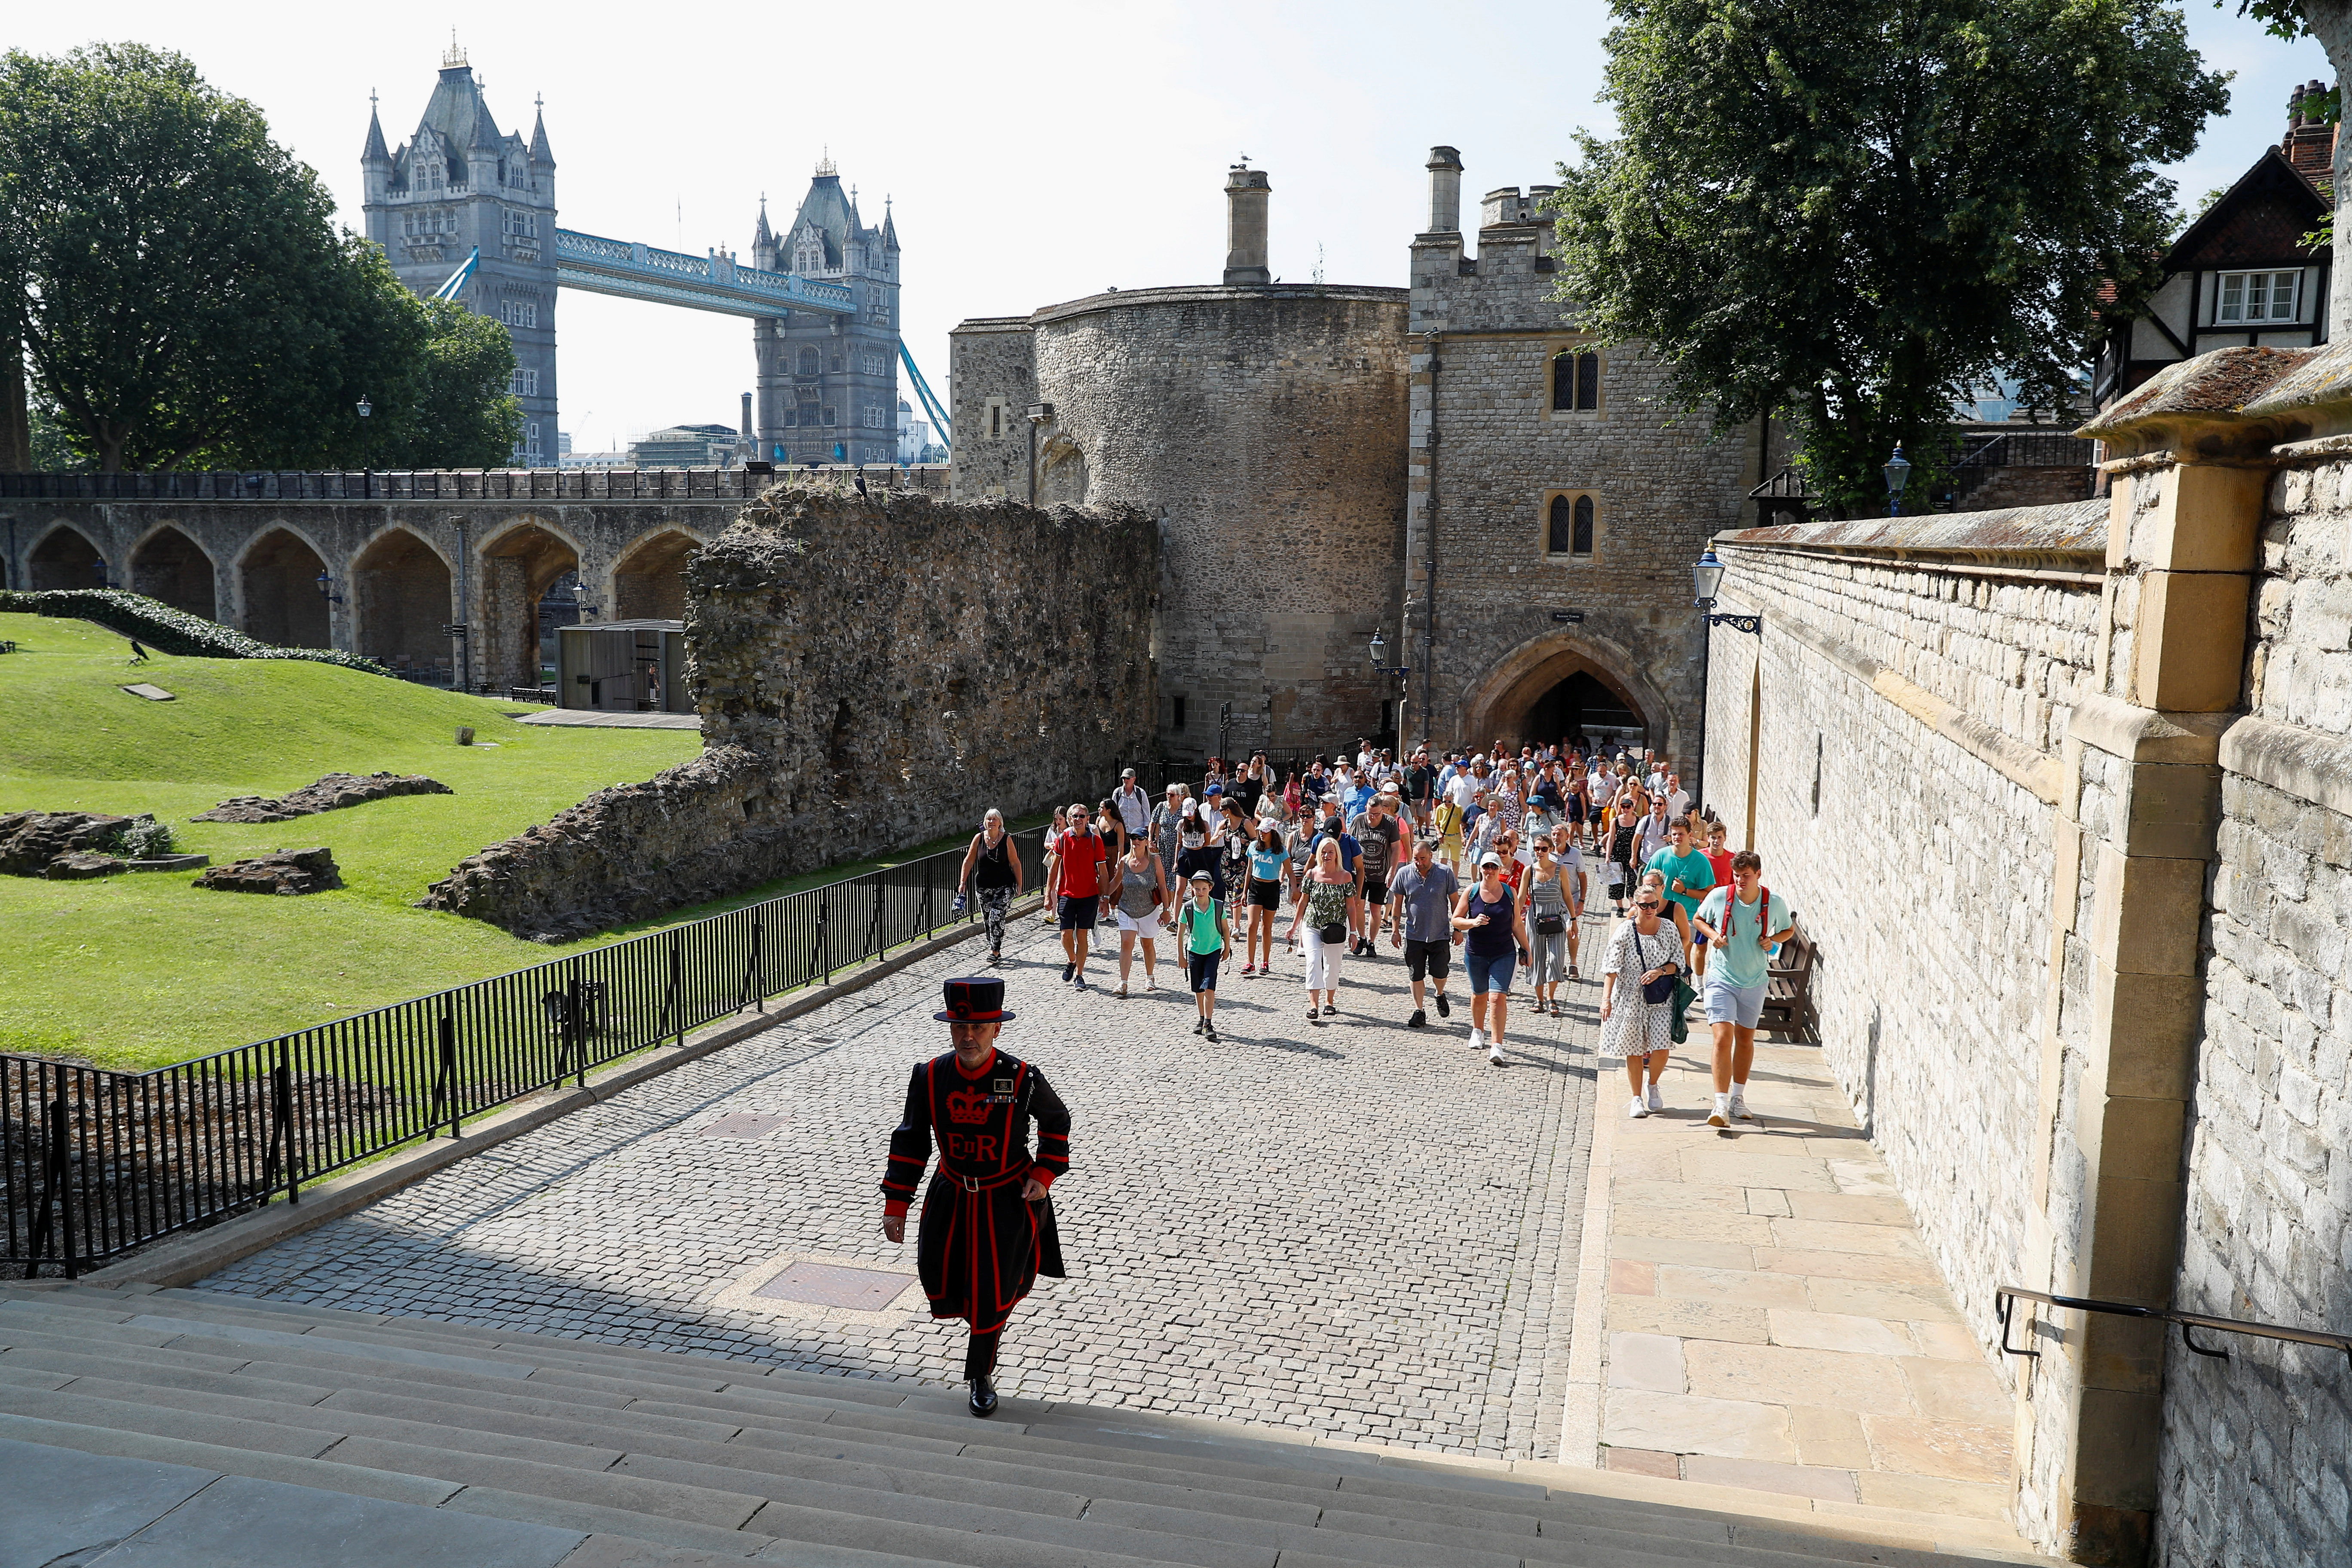 A Yeoman Warder, Barney Chandler leads the first